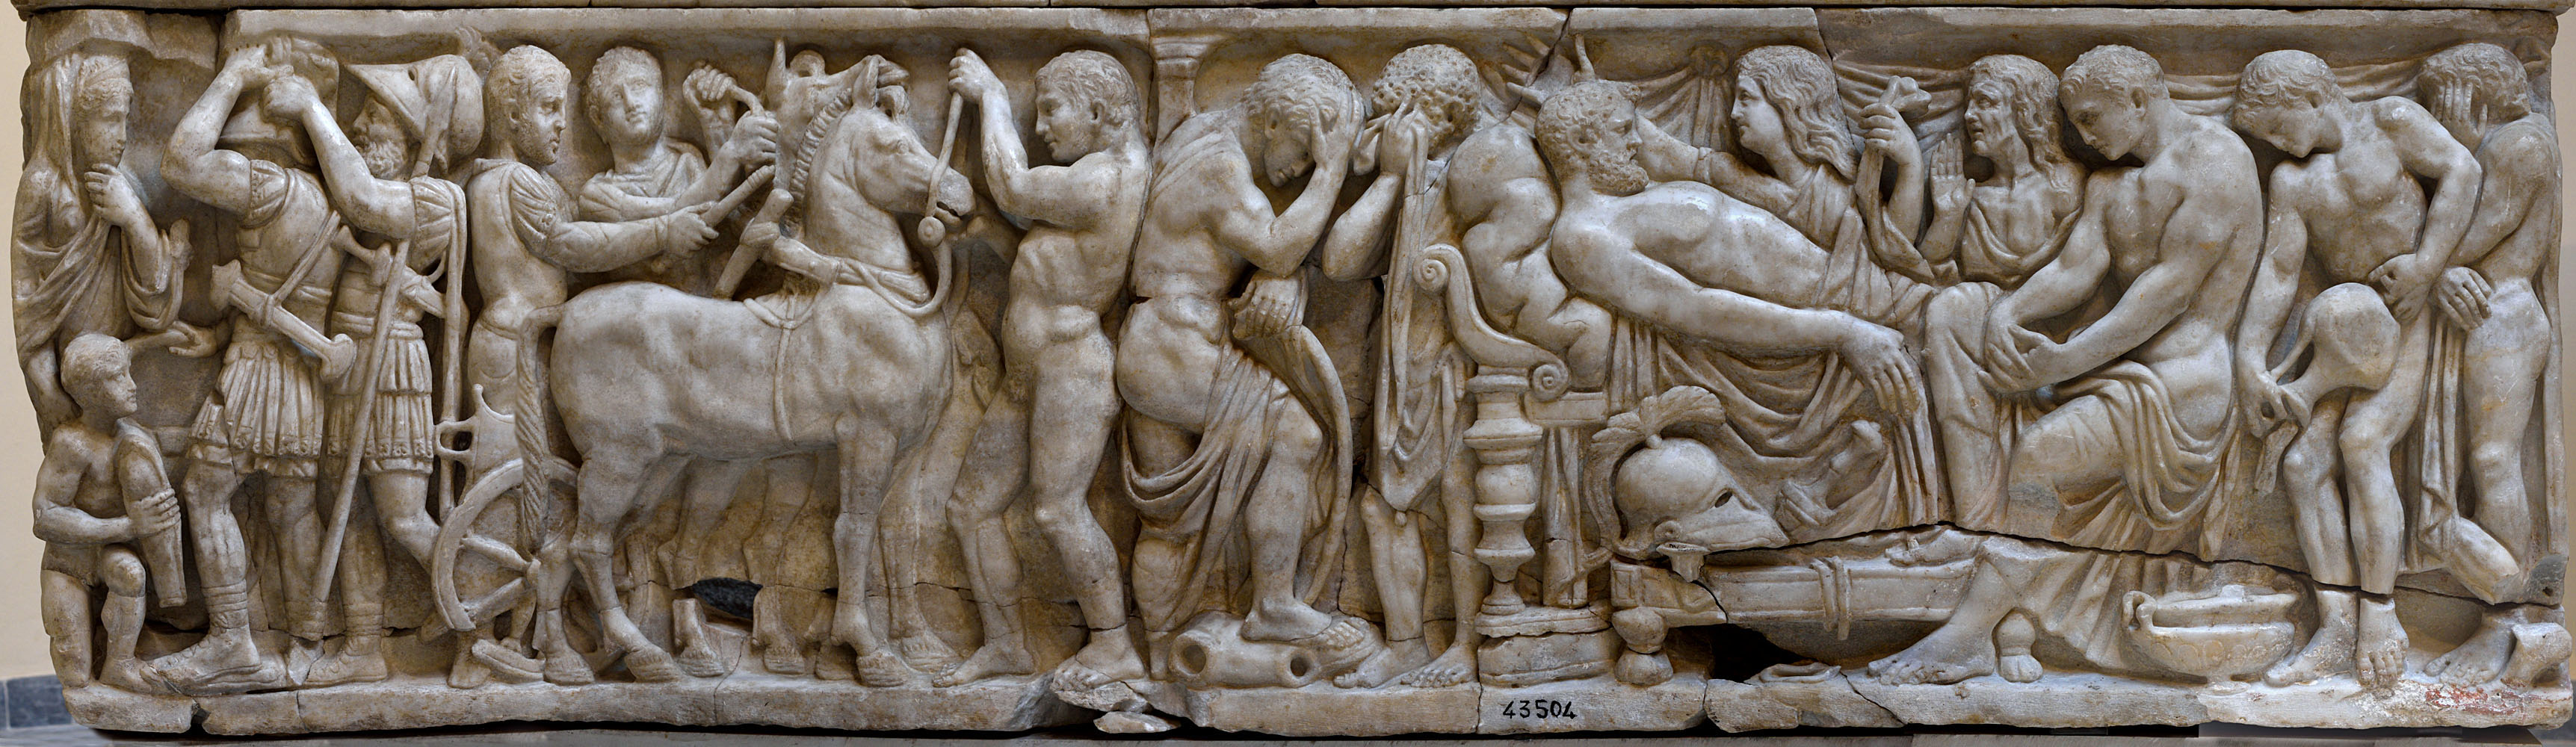 "Sarcophagus with representation of scenes from the Iliad (known as ""The Pianabella sarcophagus"") — the front panel. Greek marble. 160 CE. Inv. No. SBAO 43504. Ostia, Archaeological Museum"